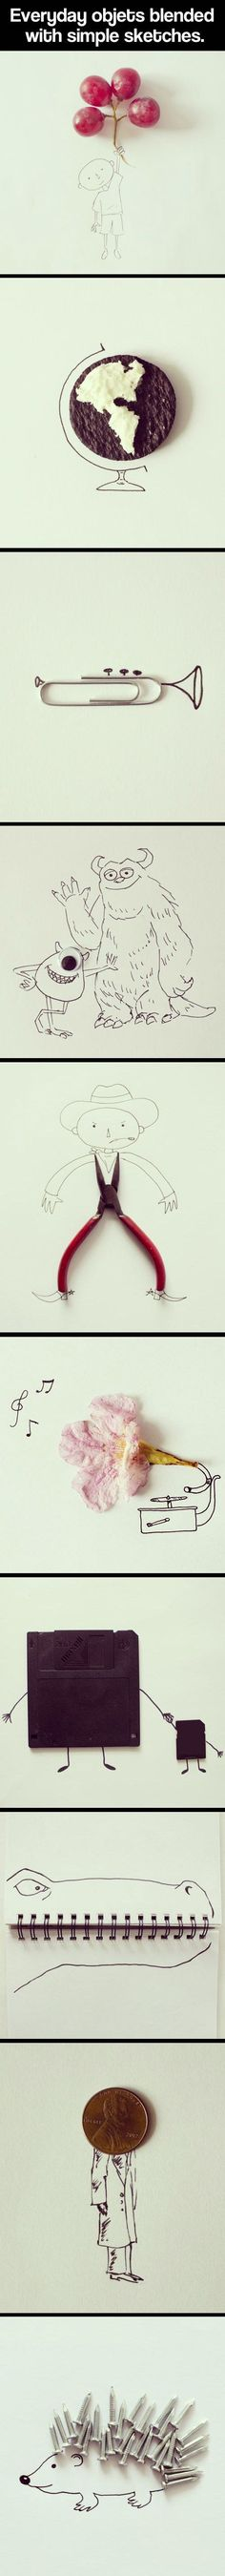 Everyday objects manipulated